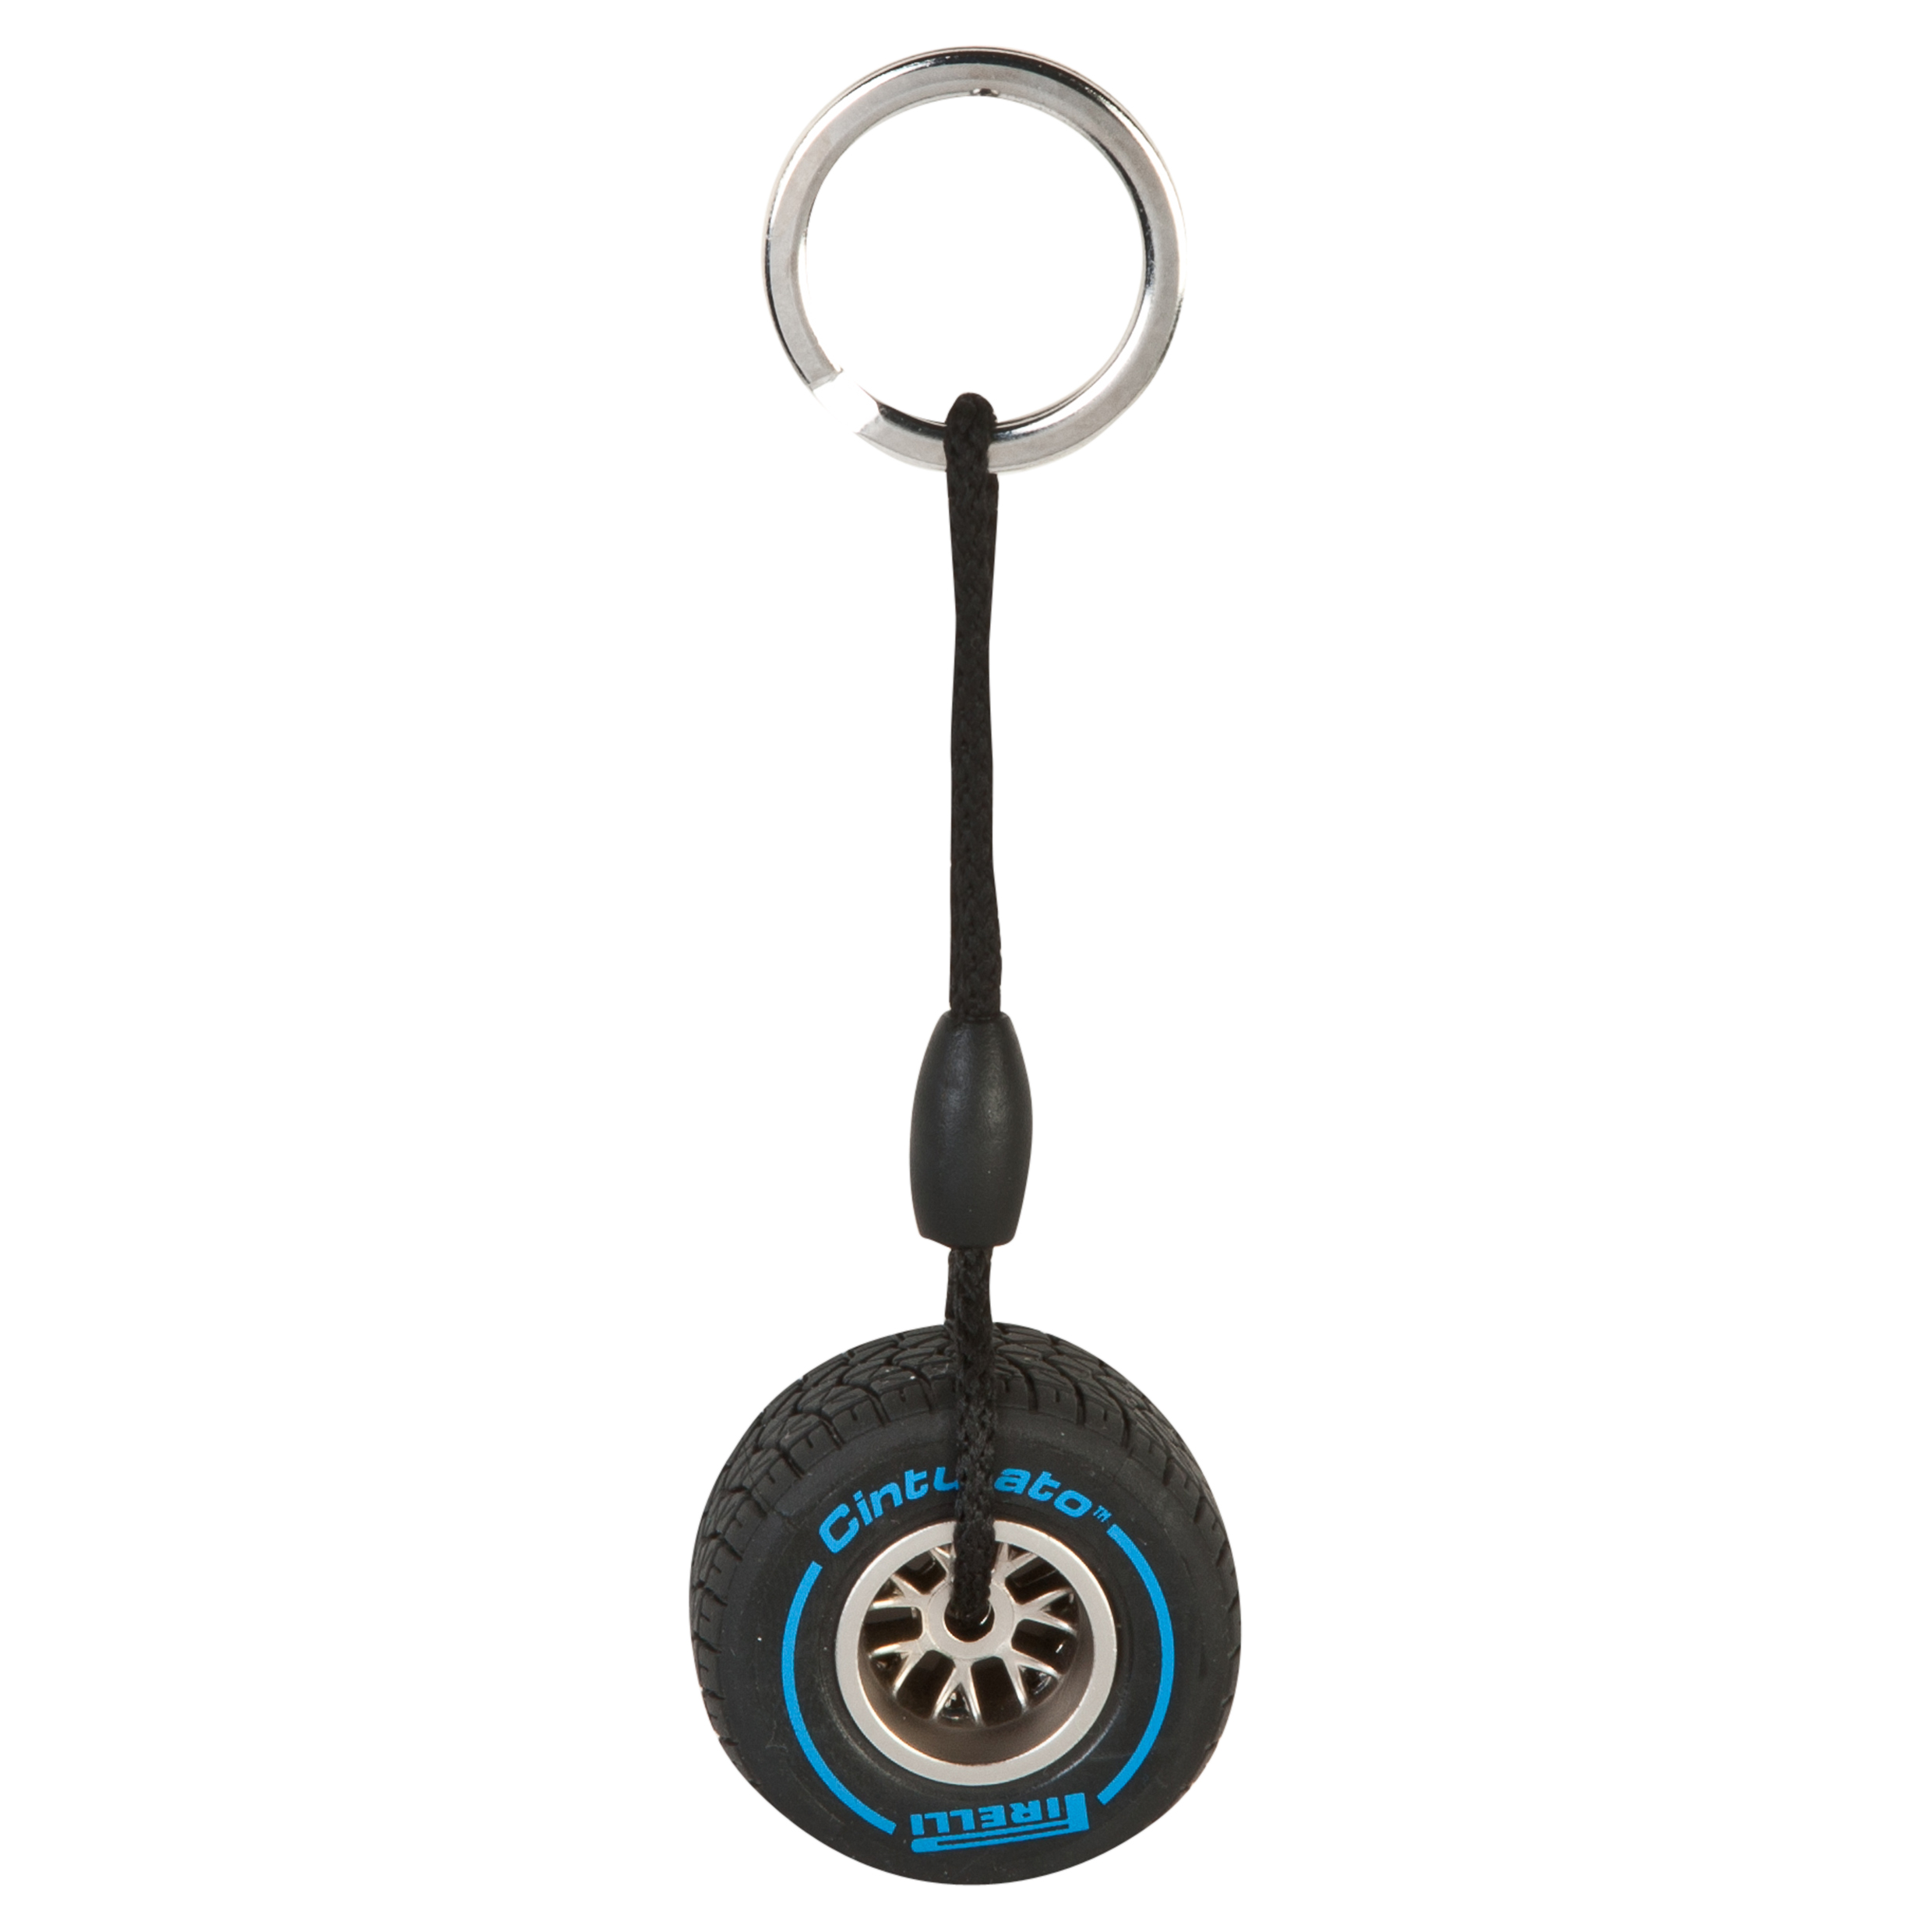 Pirelli Rim Tyre Key Ring - Wet Blue